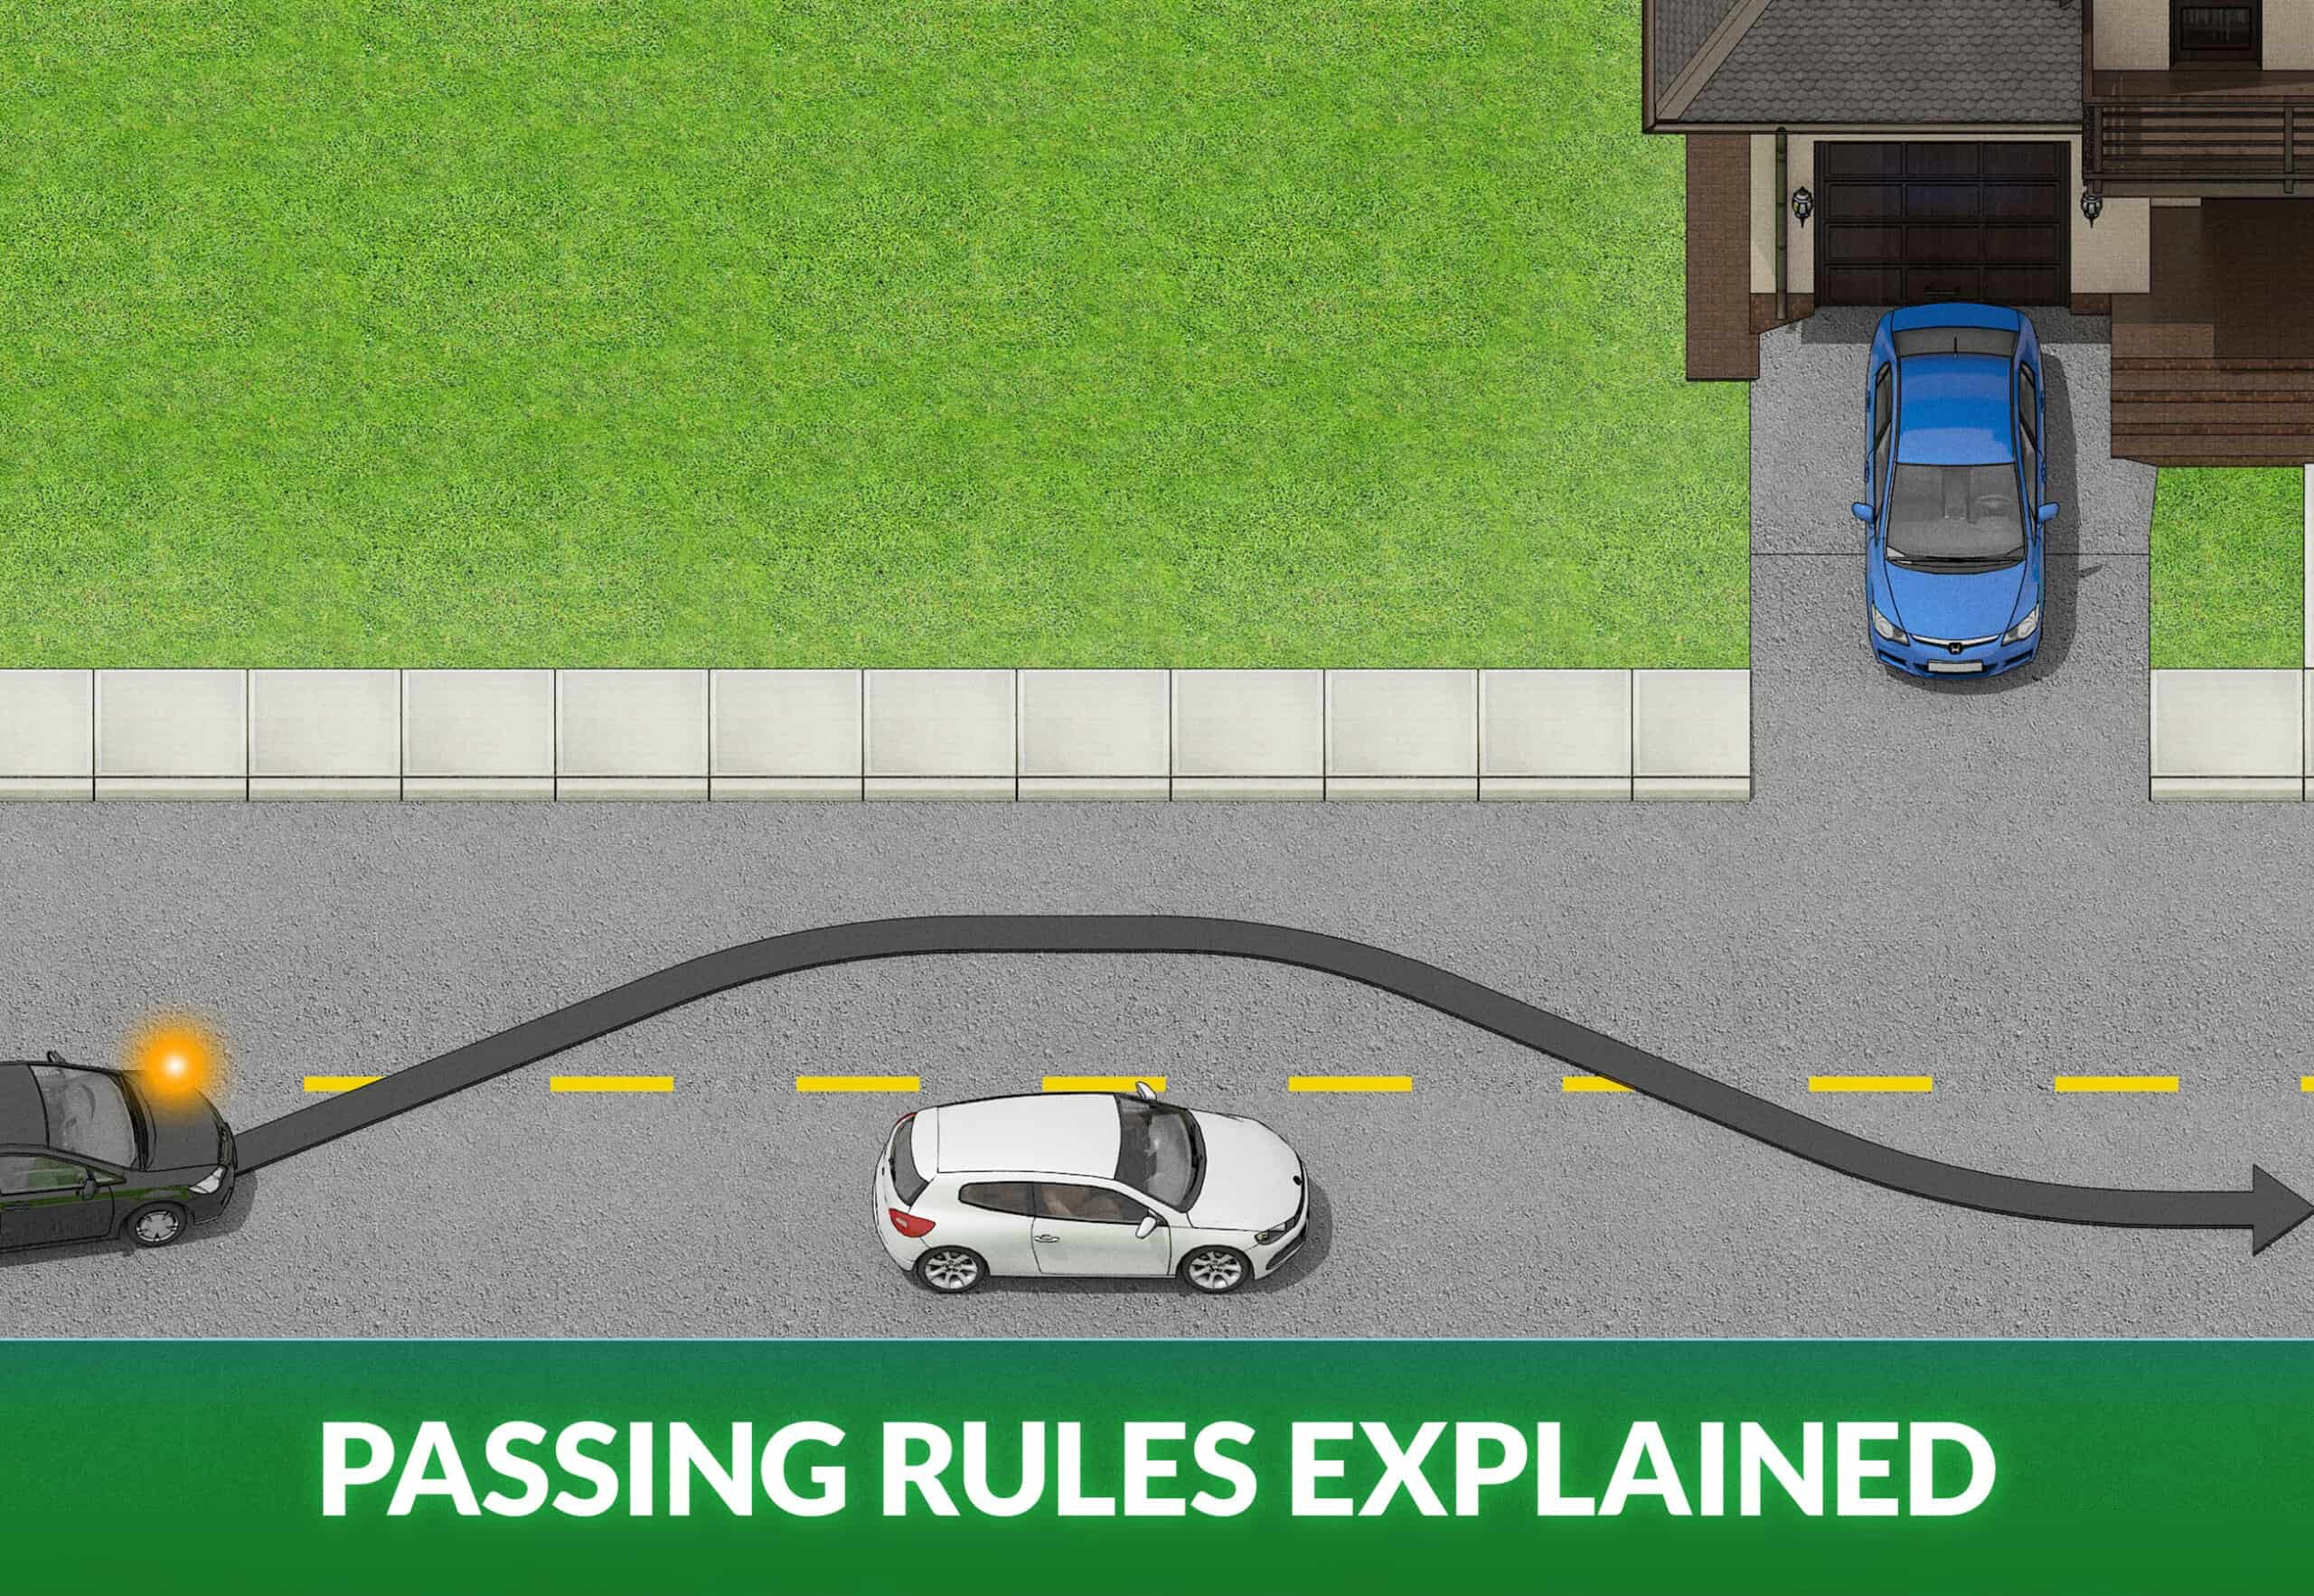 PASSING RULES EXPLAINED